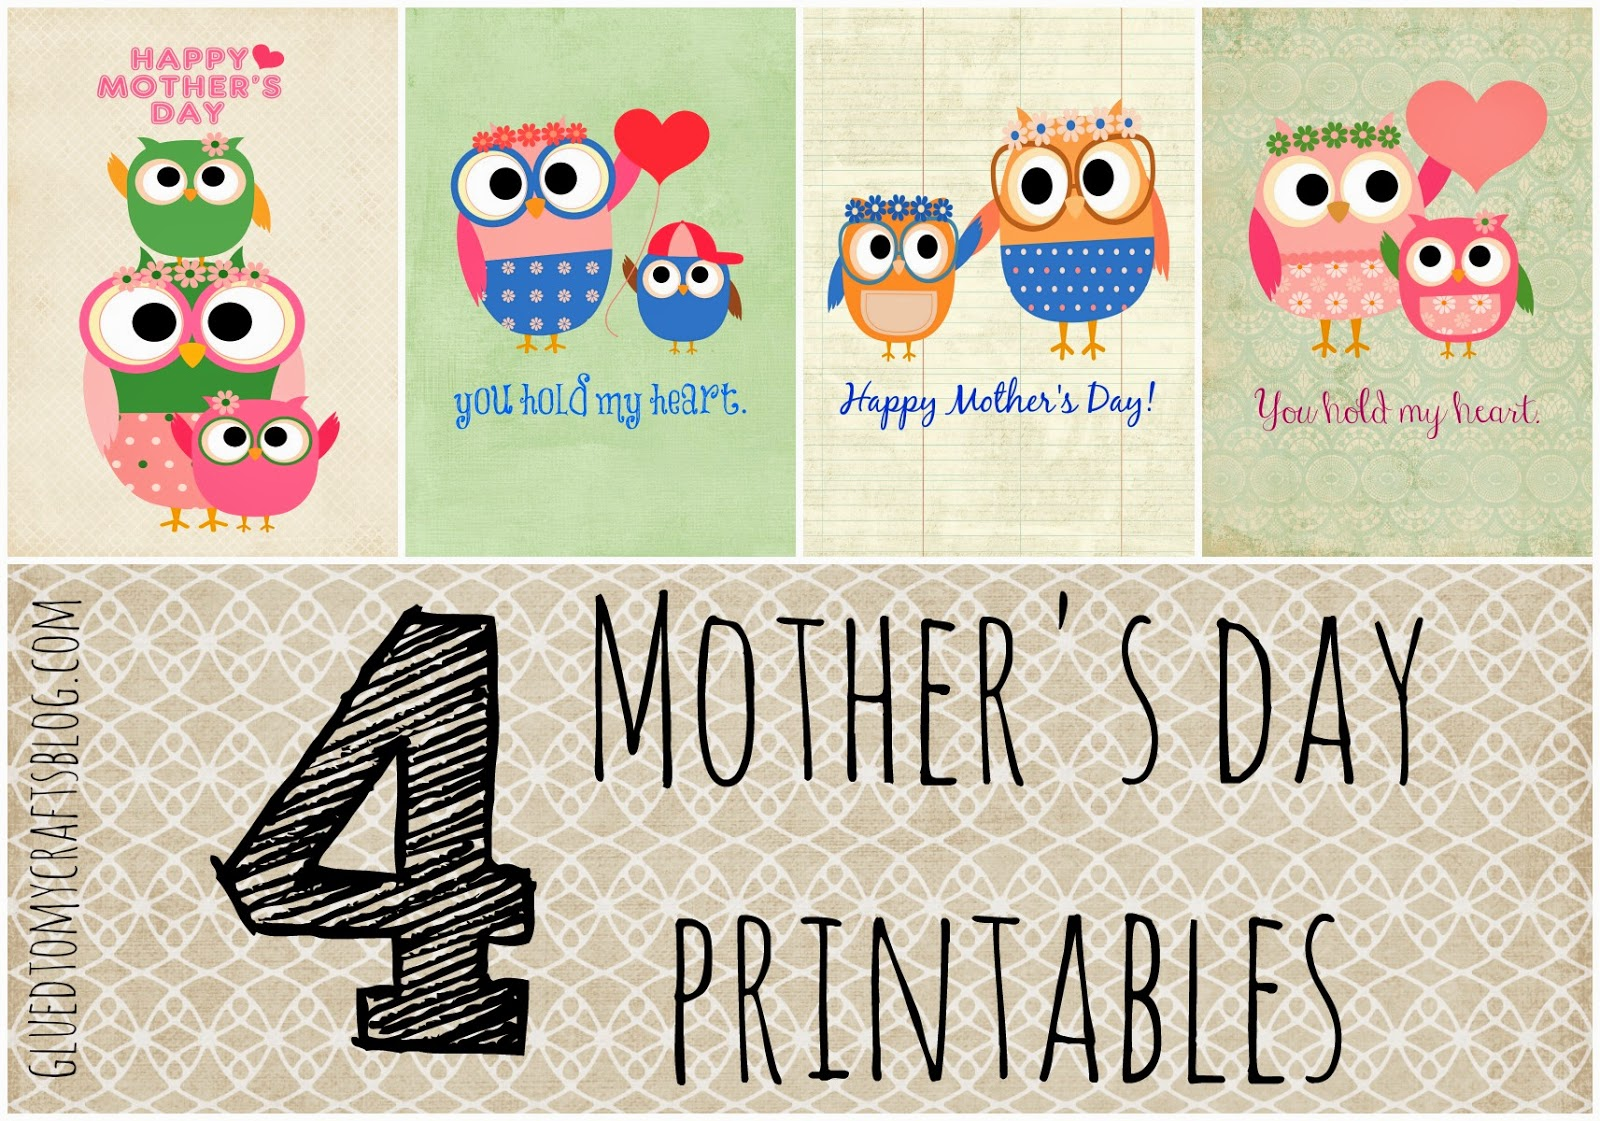 photograph about Free Printable Mothers Day Cards for Wife called No cost Printable Moms Working day Playing cards (PDF) Cisdem